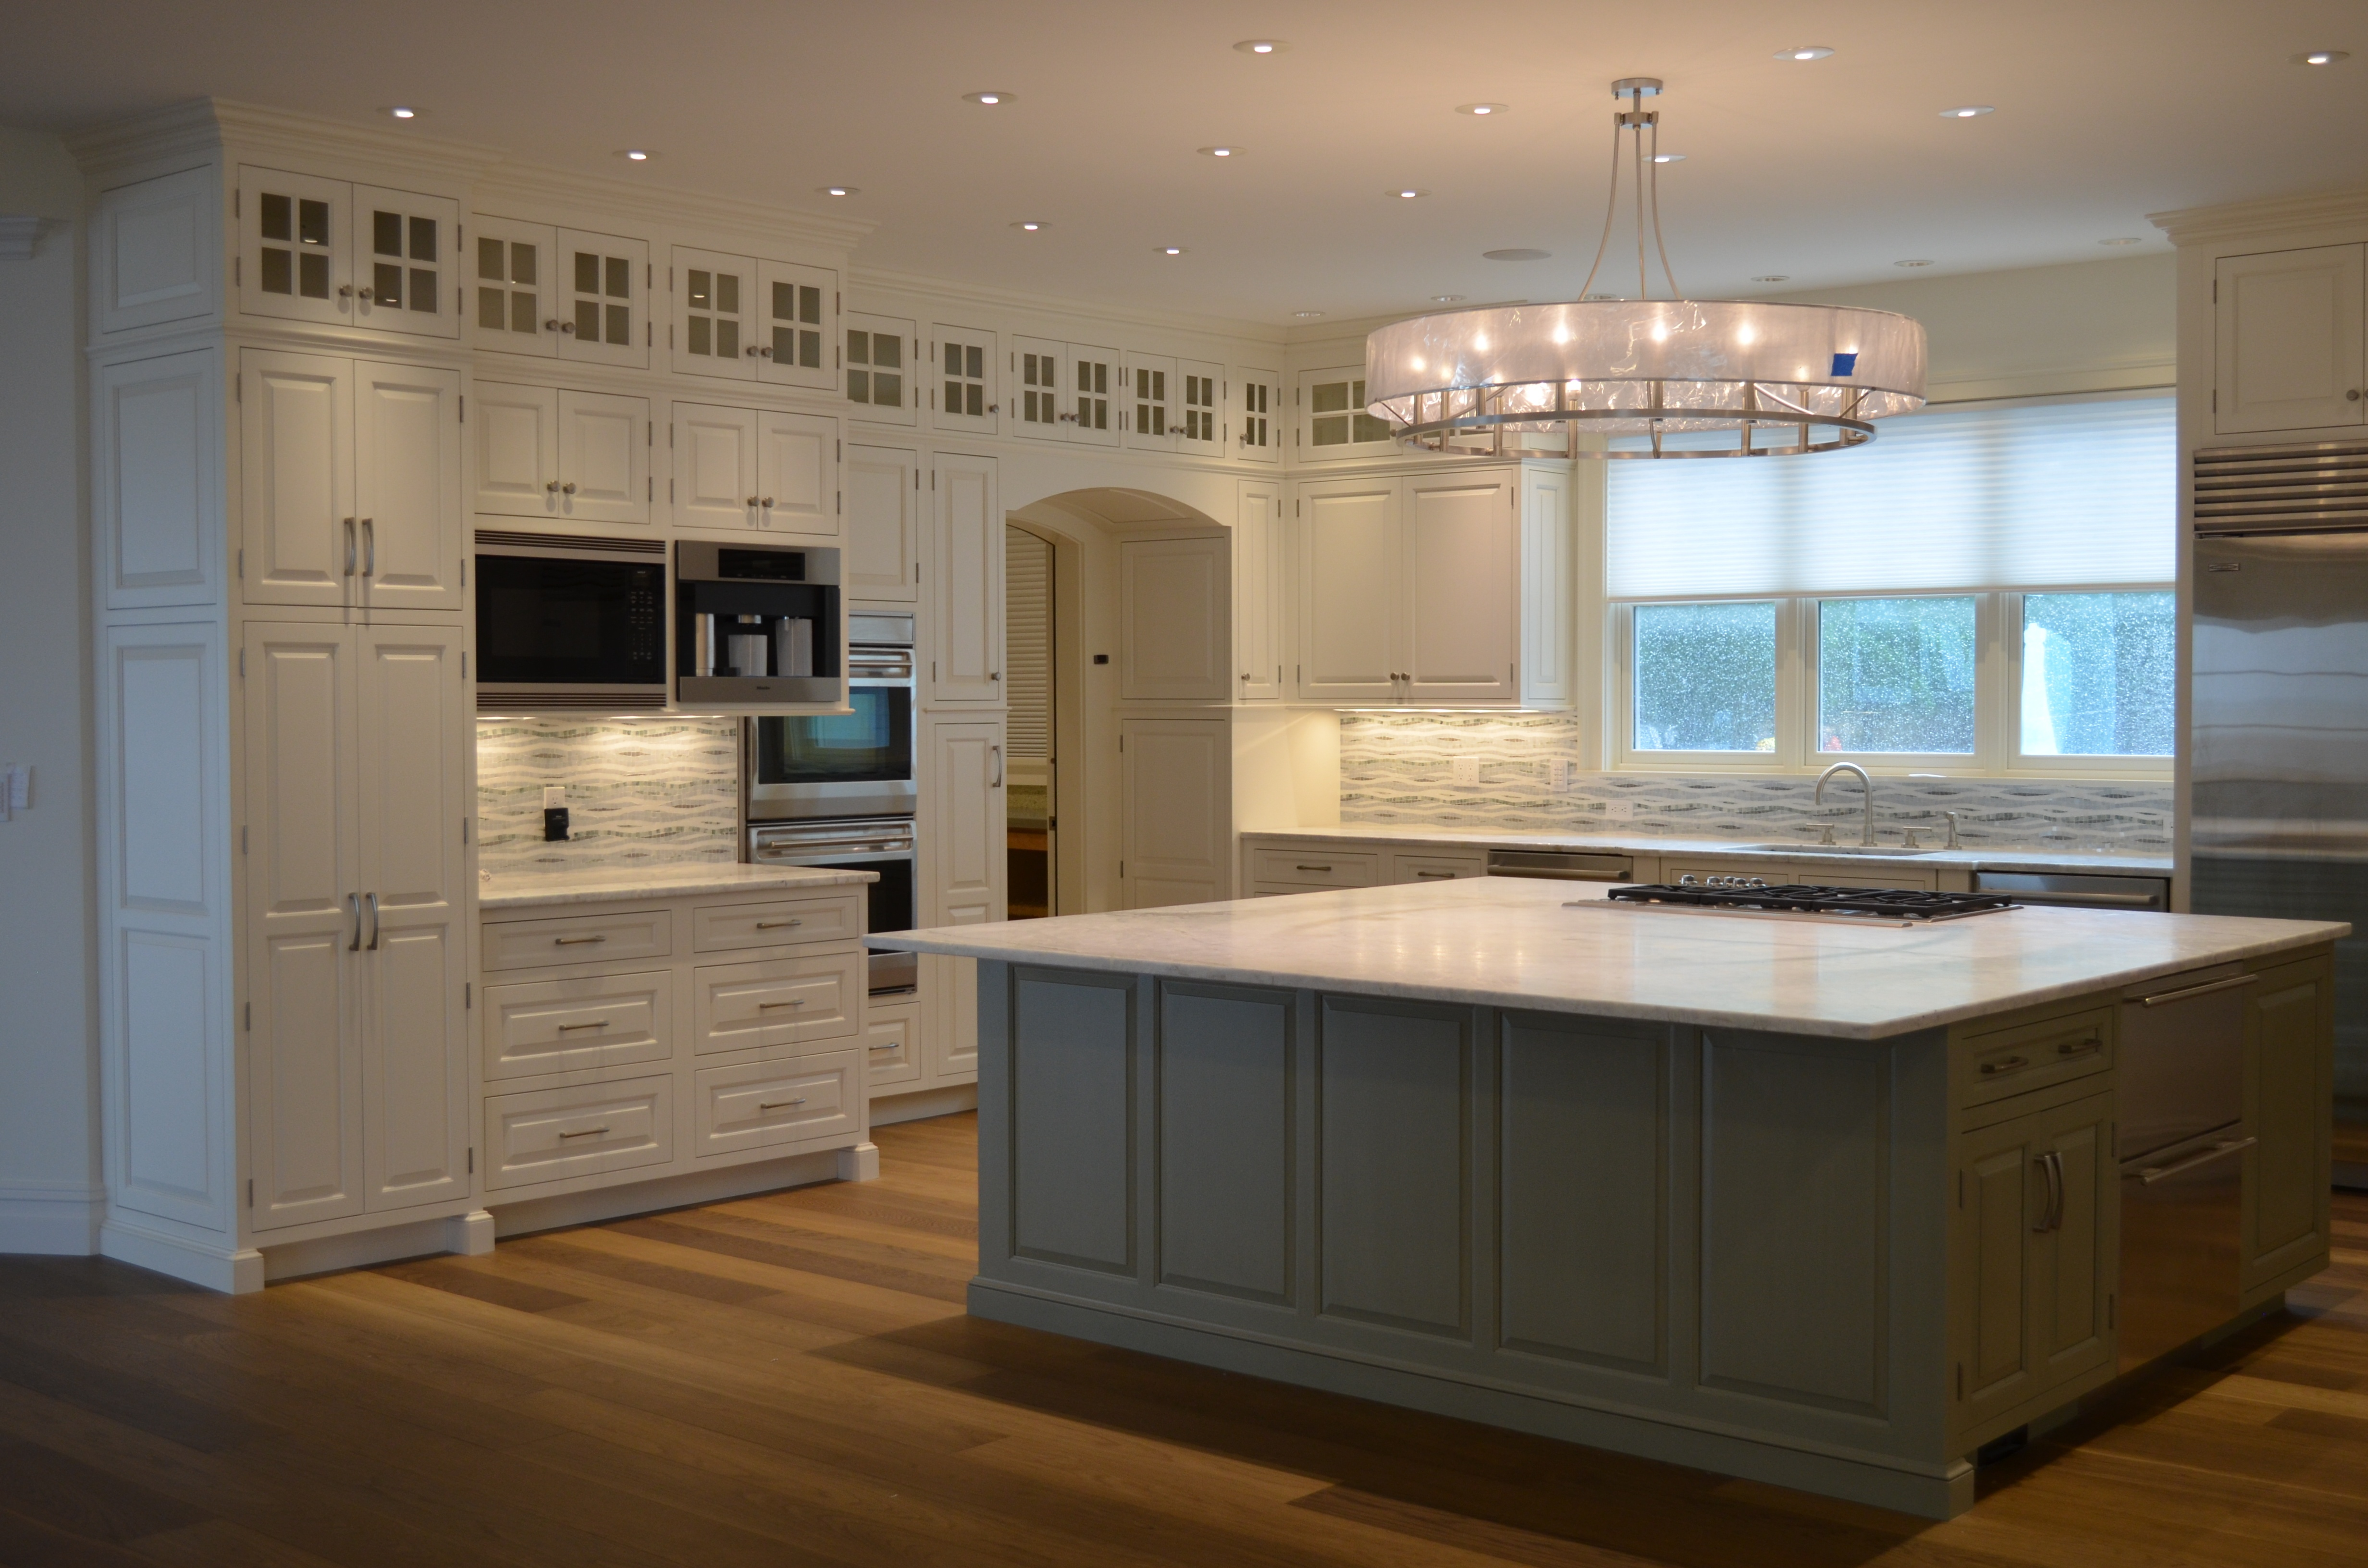 Transitional custom kitchen by General Woodcraft Inc